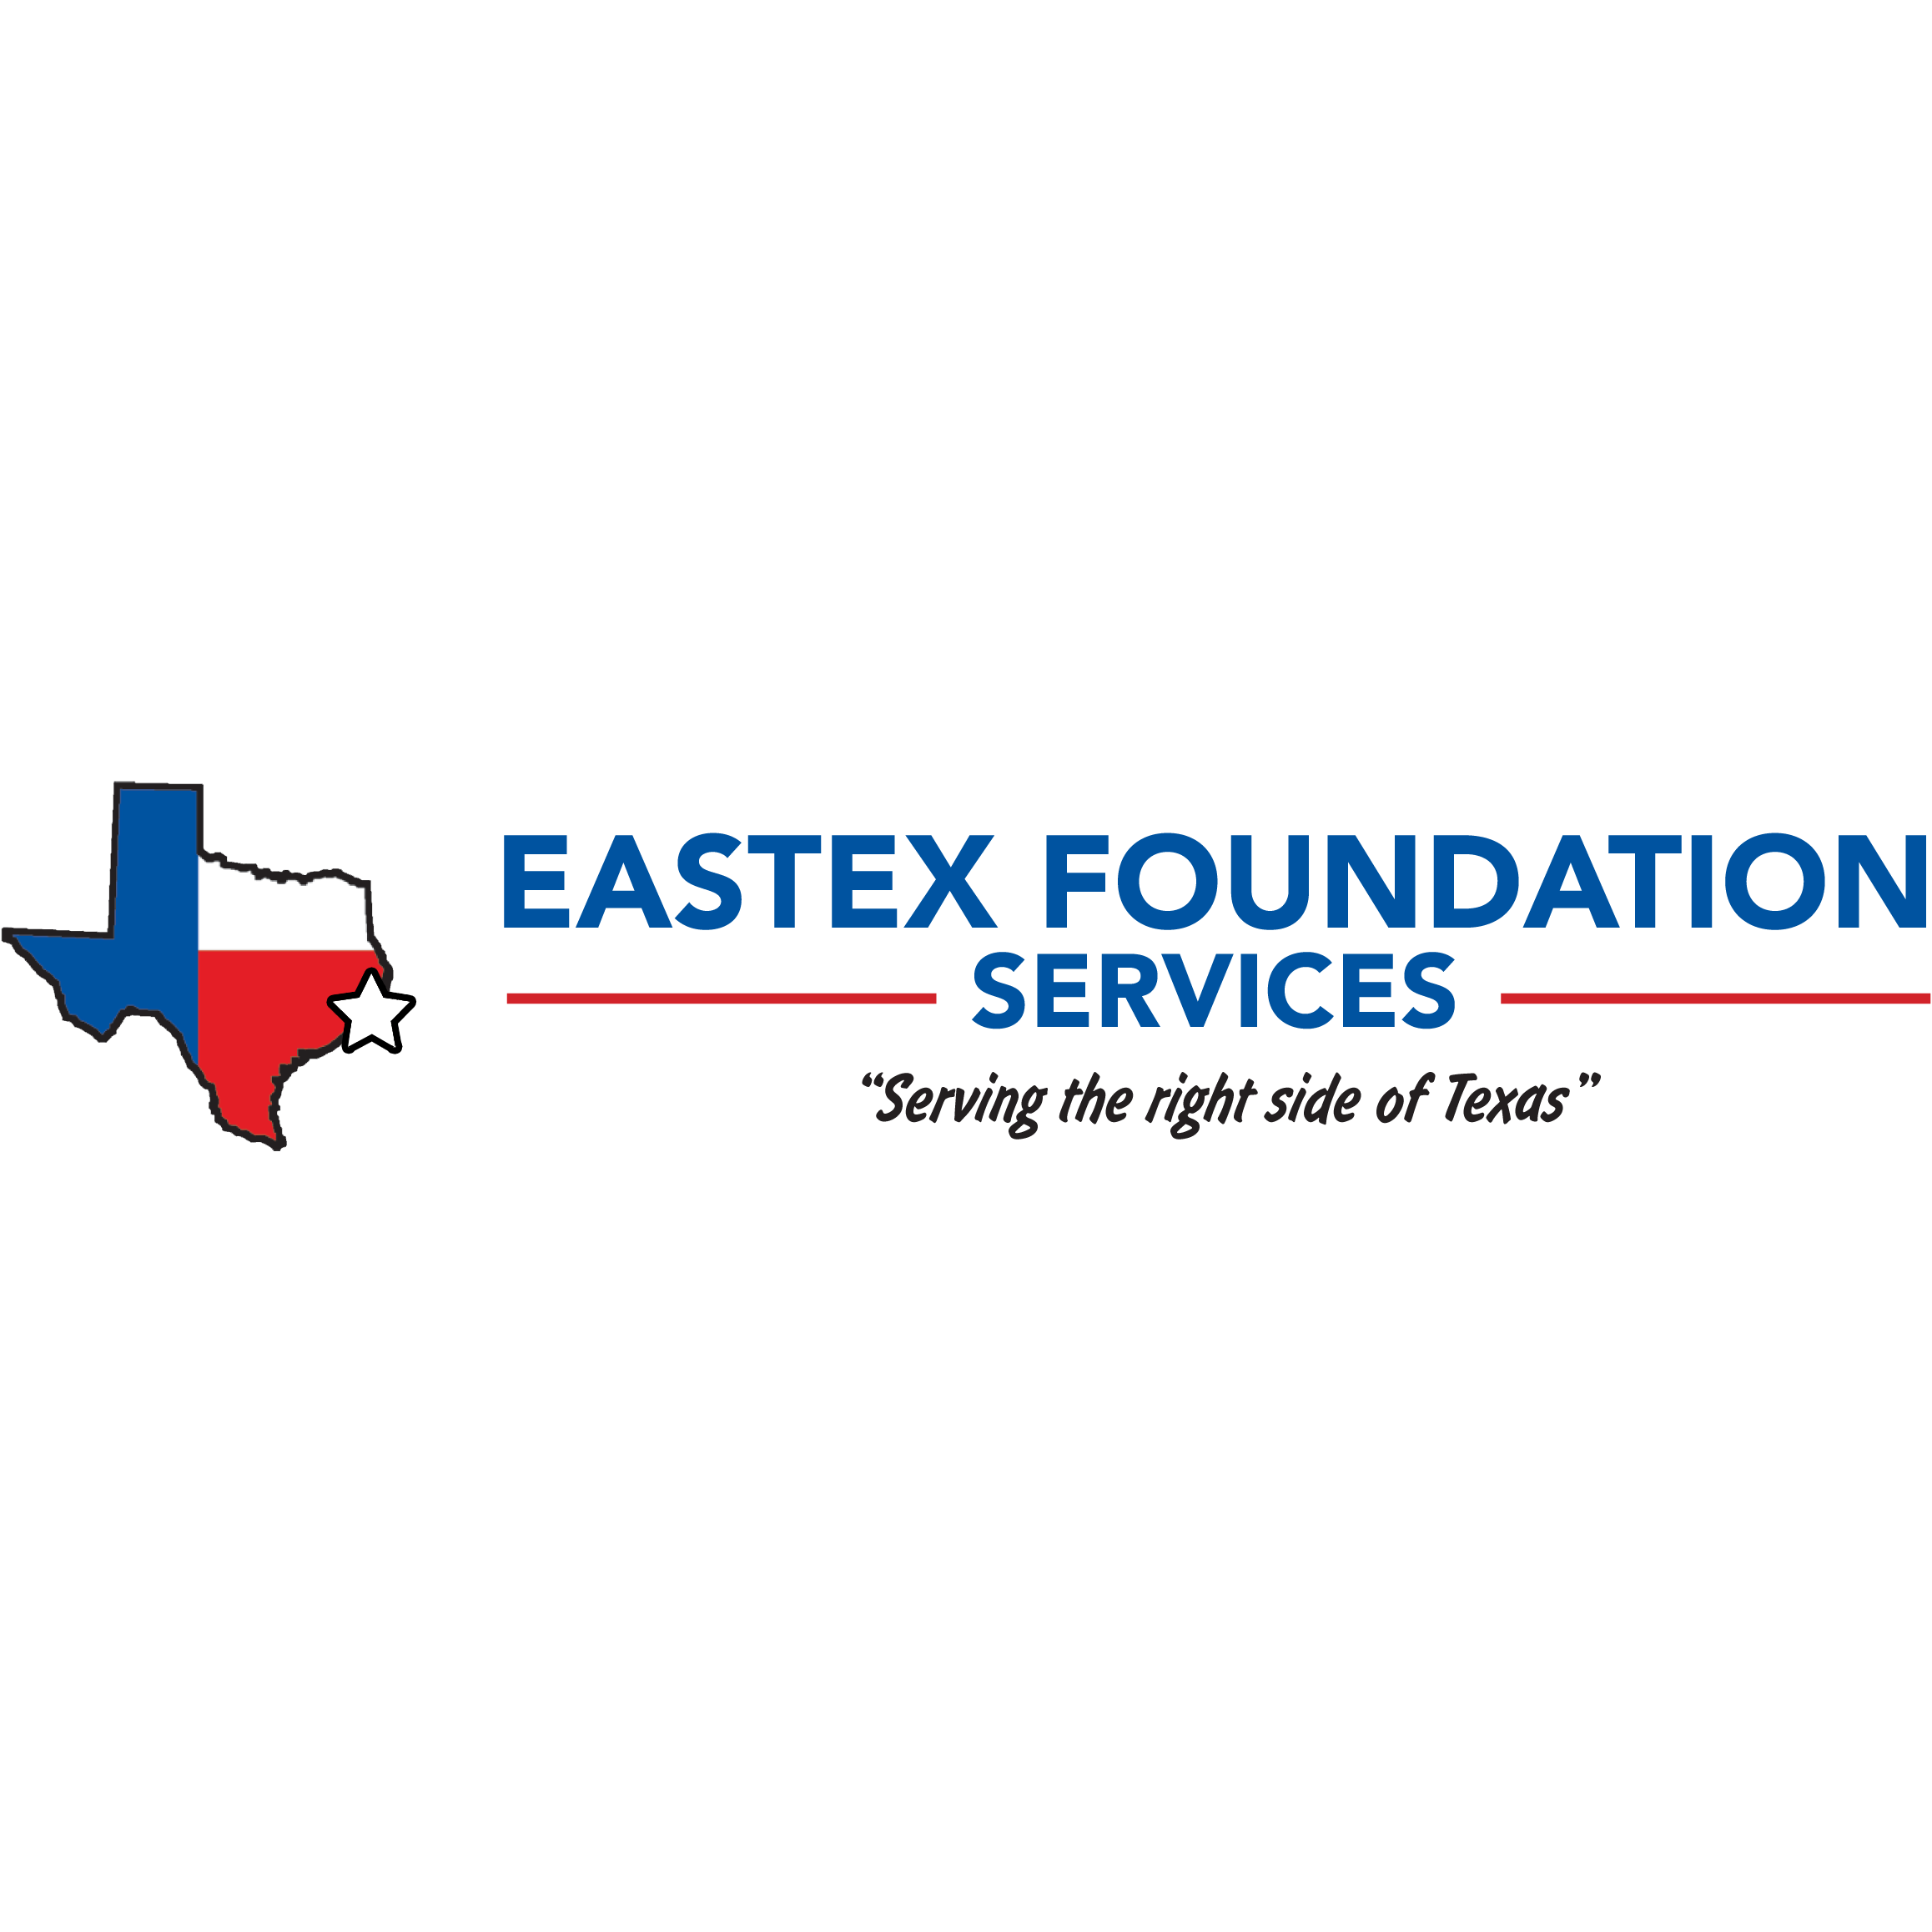 Eastex Foundation Services